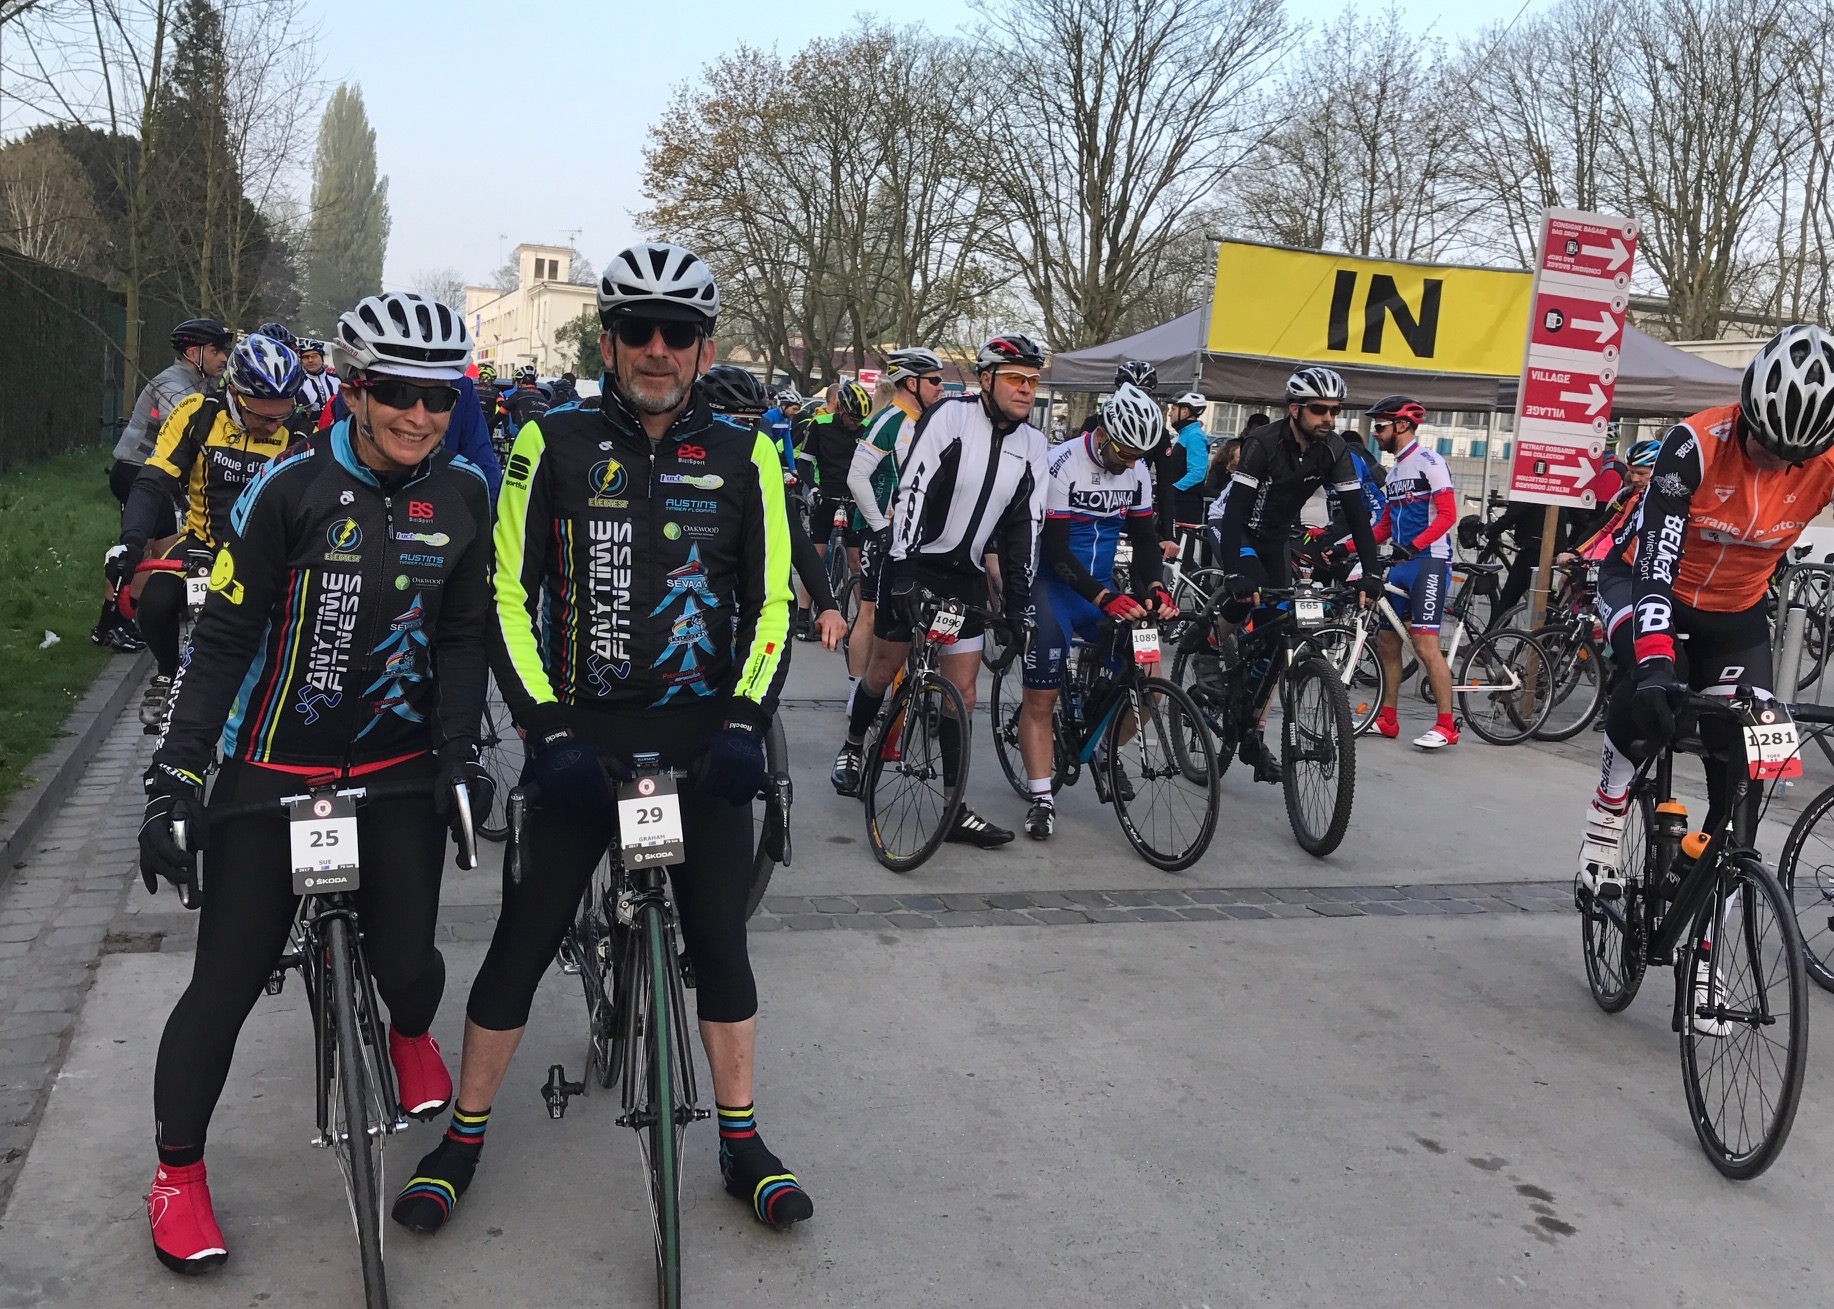 Paris Roubaix Cyclosportive Apr 2017  -  Sue & Graham Tierney at the Roubaix Velodrome start